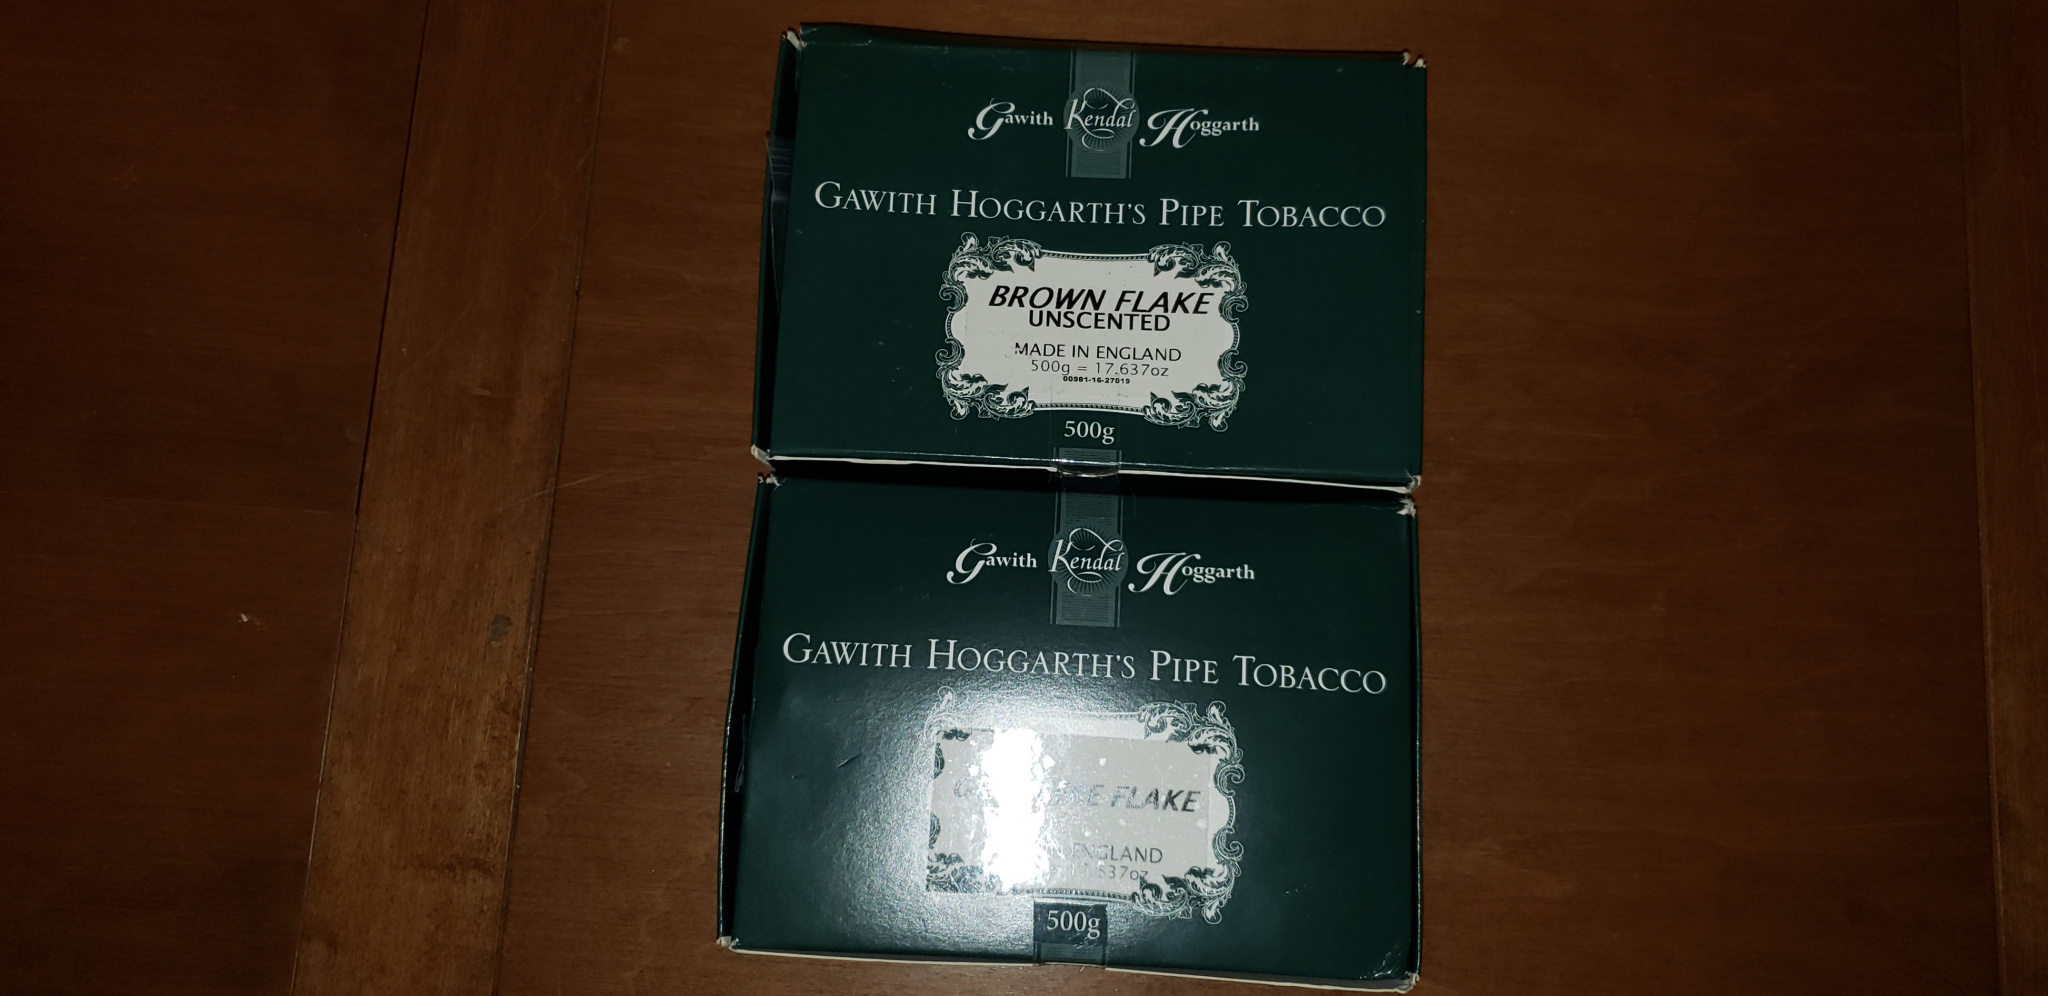 Whats your latest pipe purchase?-2a679075-14b8-43d1-af3e-b1f16c0fe675.jpg